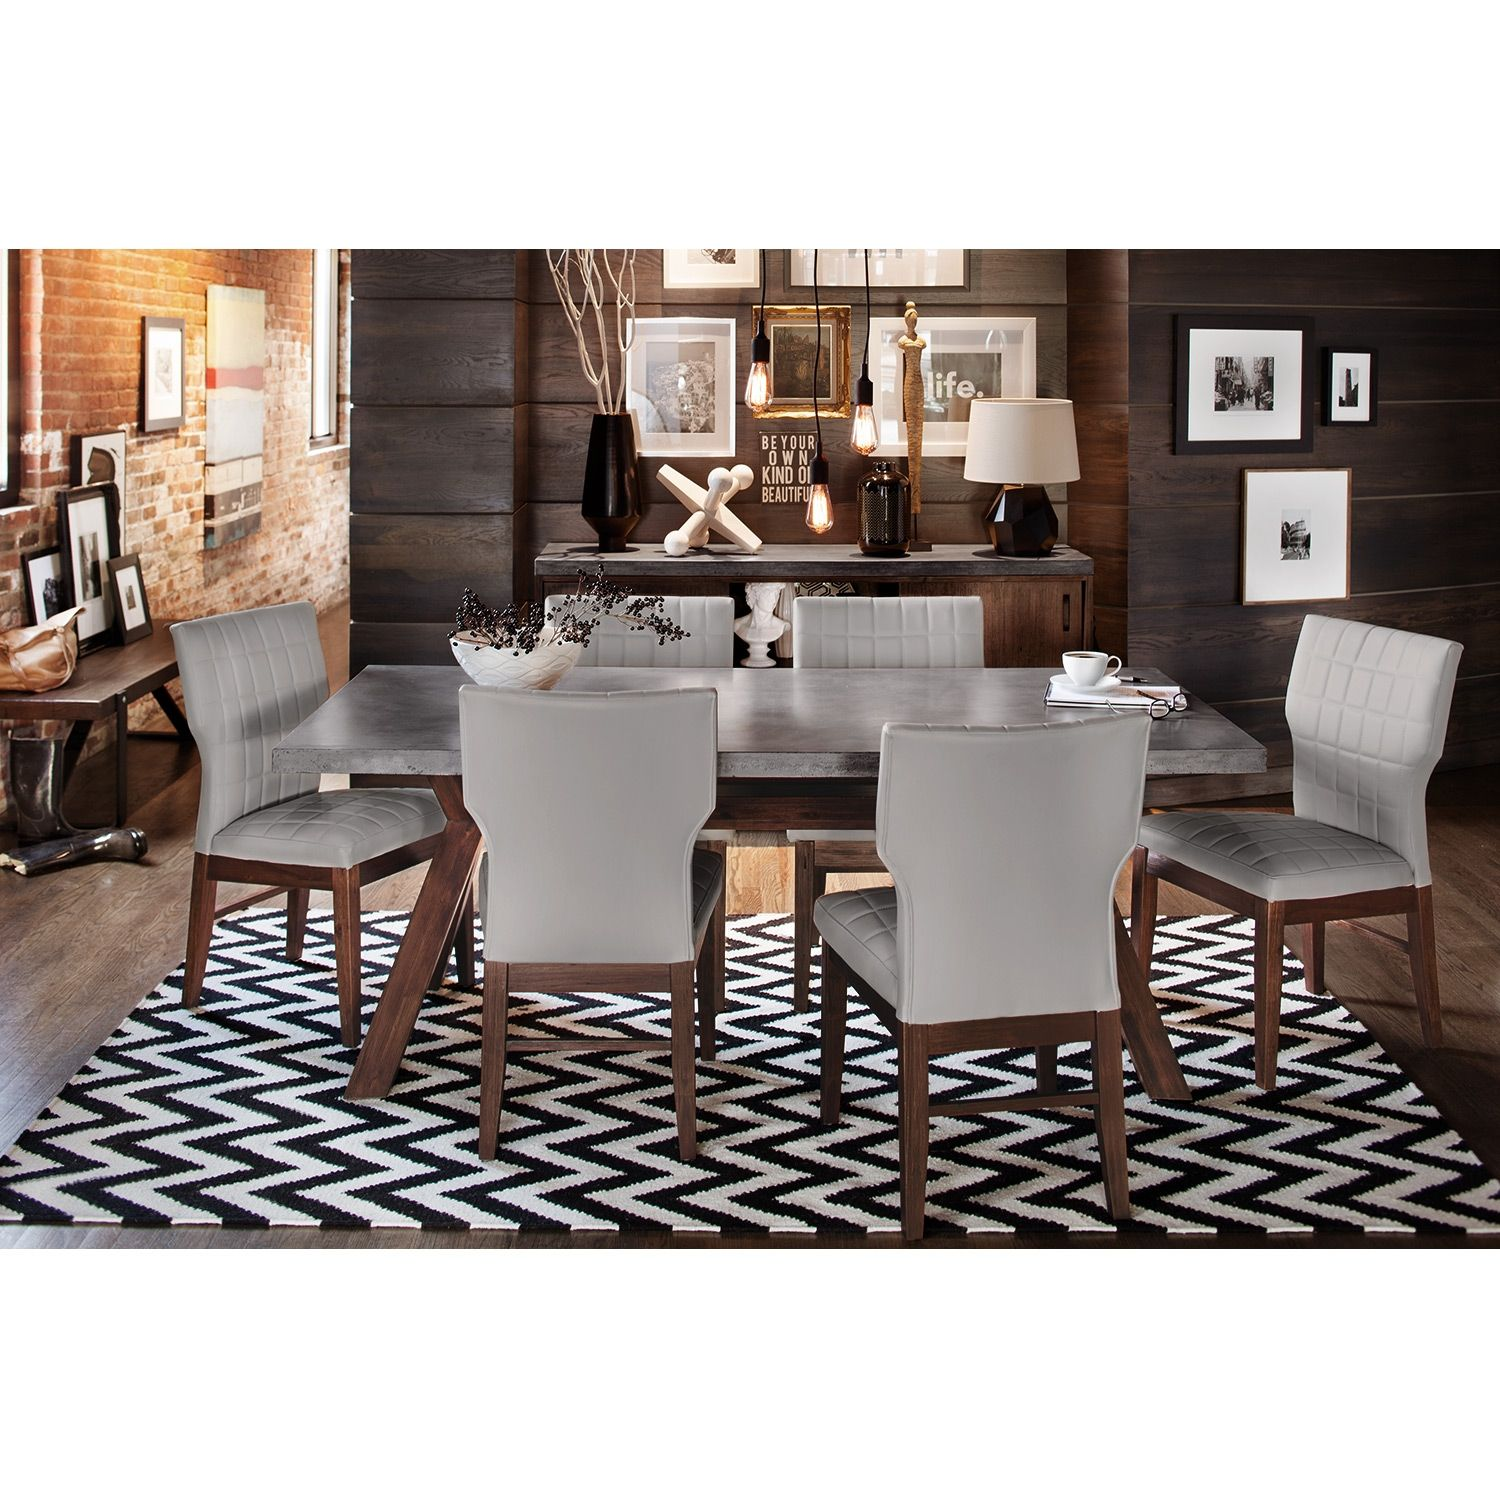 Mercer Ii 5 Pcdining Room  Value City Furniture  Industrial Alluring City Furniture Dining Room Design Inspiration